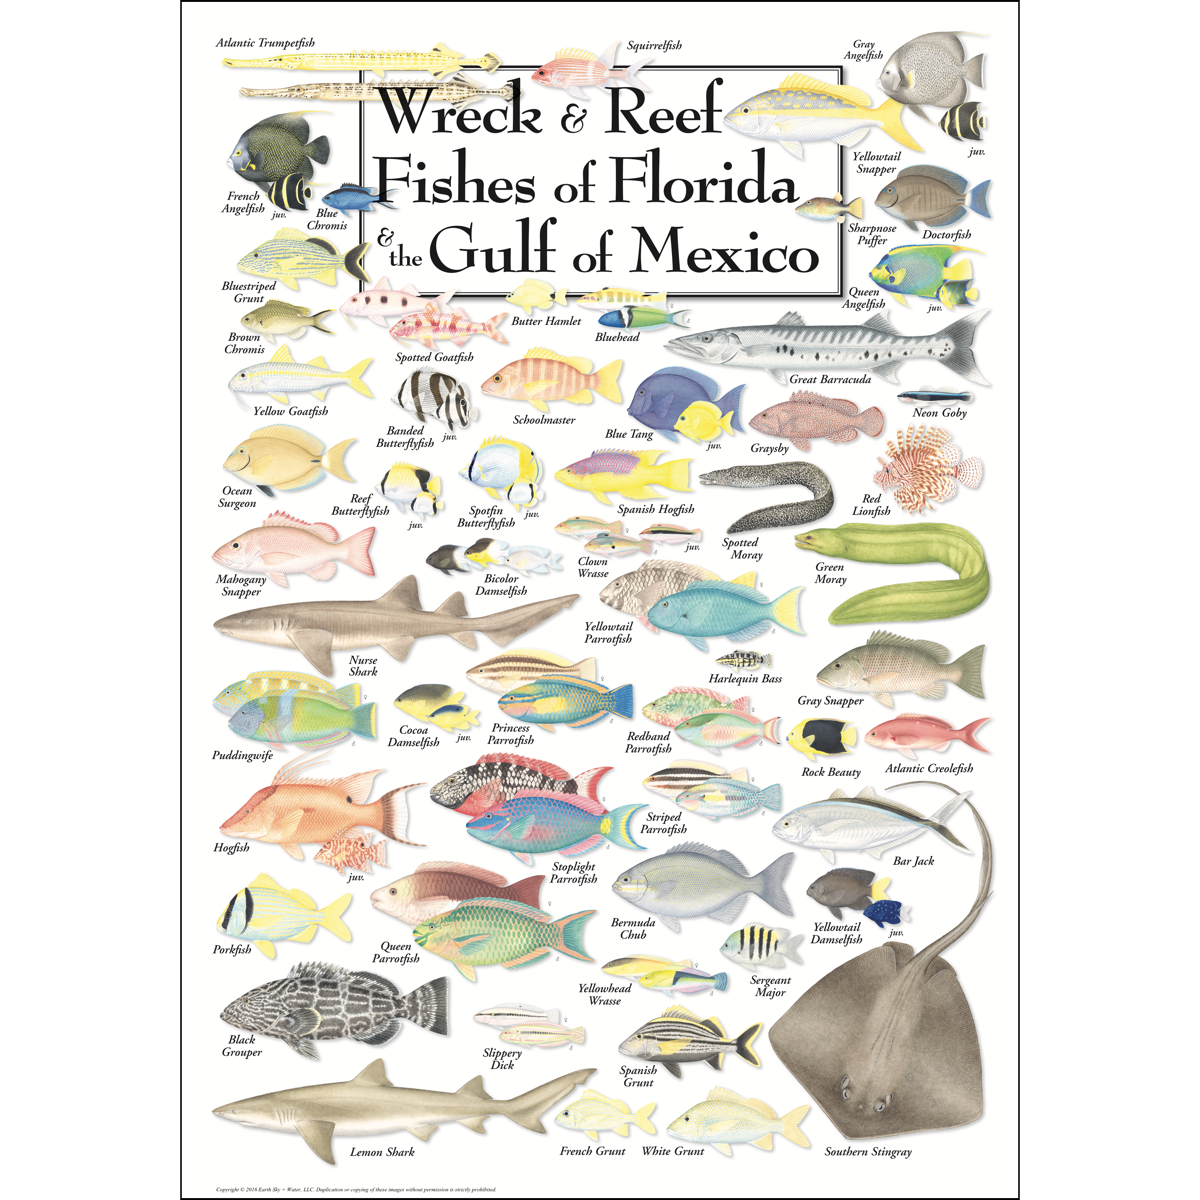 Wreck reef fishes of florida the gulf of mexico for Types of fish in the gulf of mexico